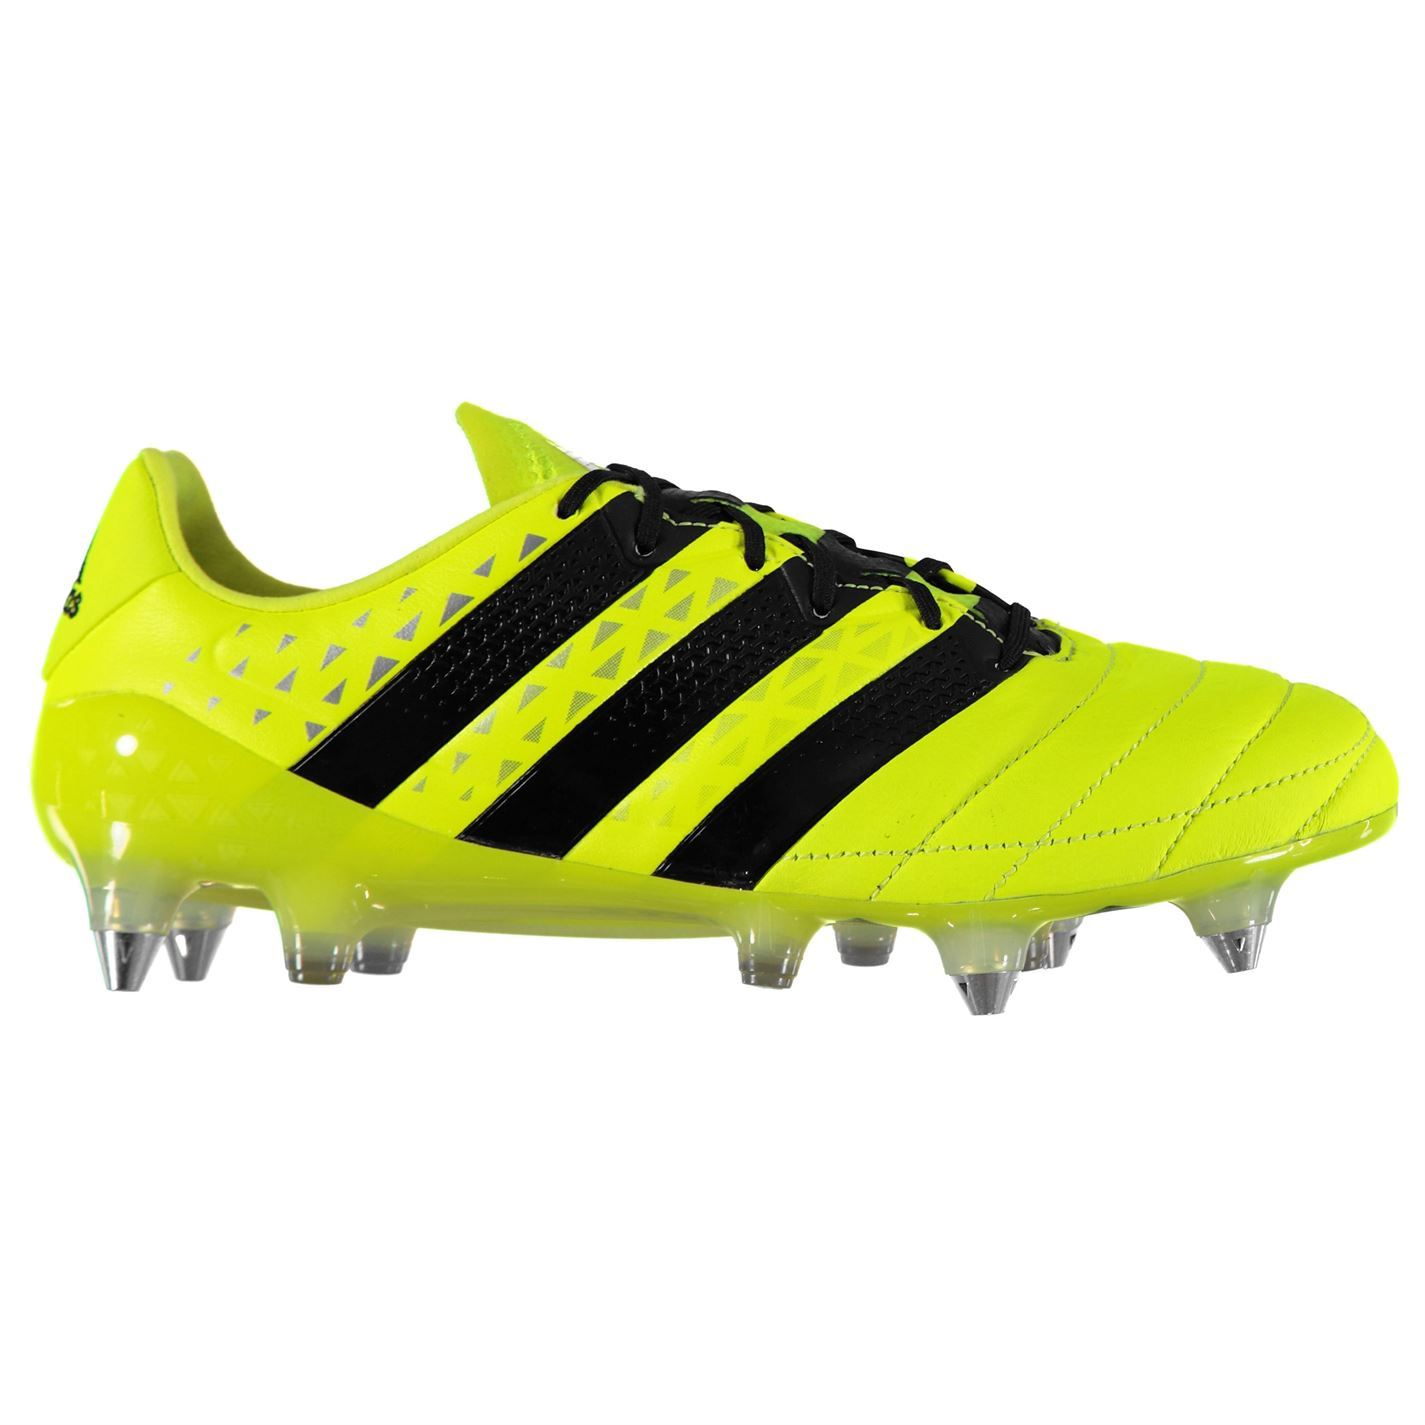 c9f3e367edf ... adidas Ace 16.1 SG Soft Ground Football Boots Mens Yellow Soccer Shoes  Cleats ...